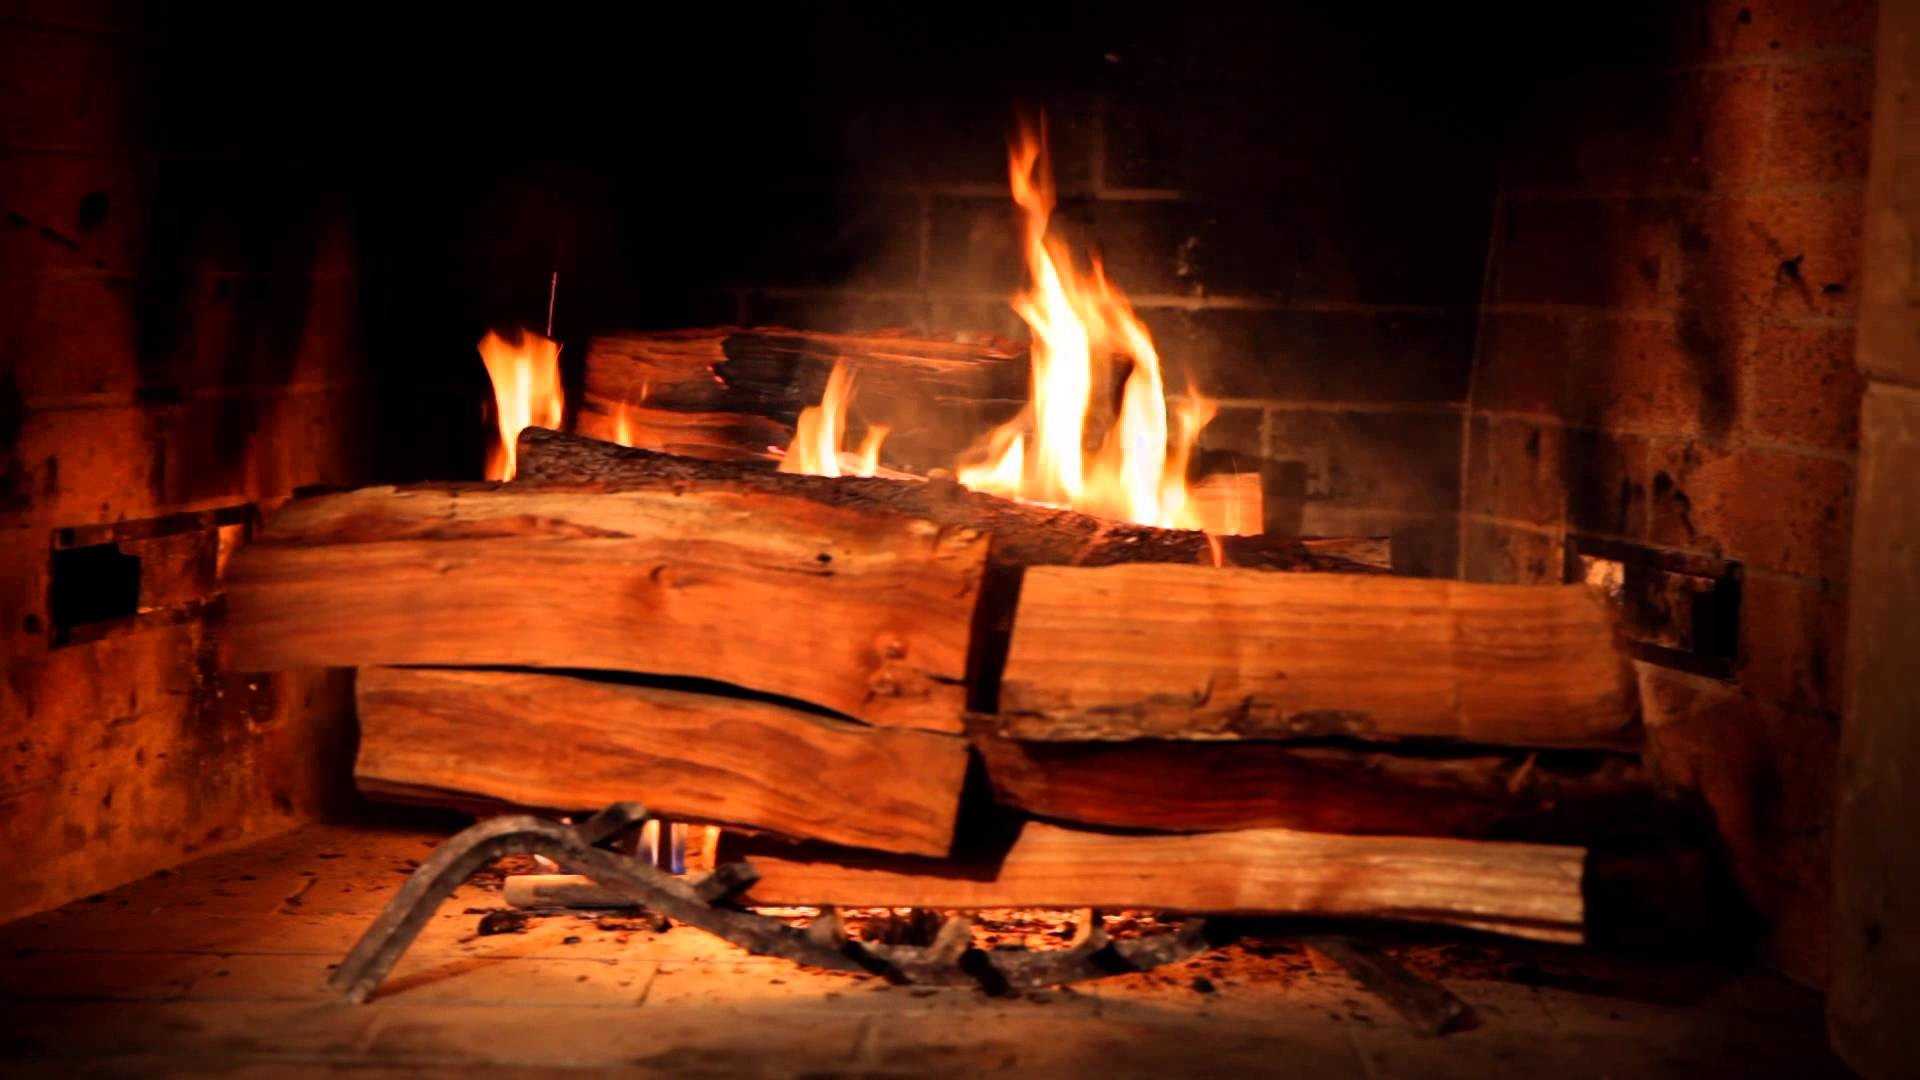 1920x1080 The Yule Log